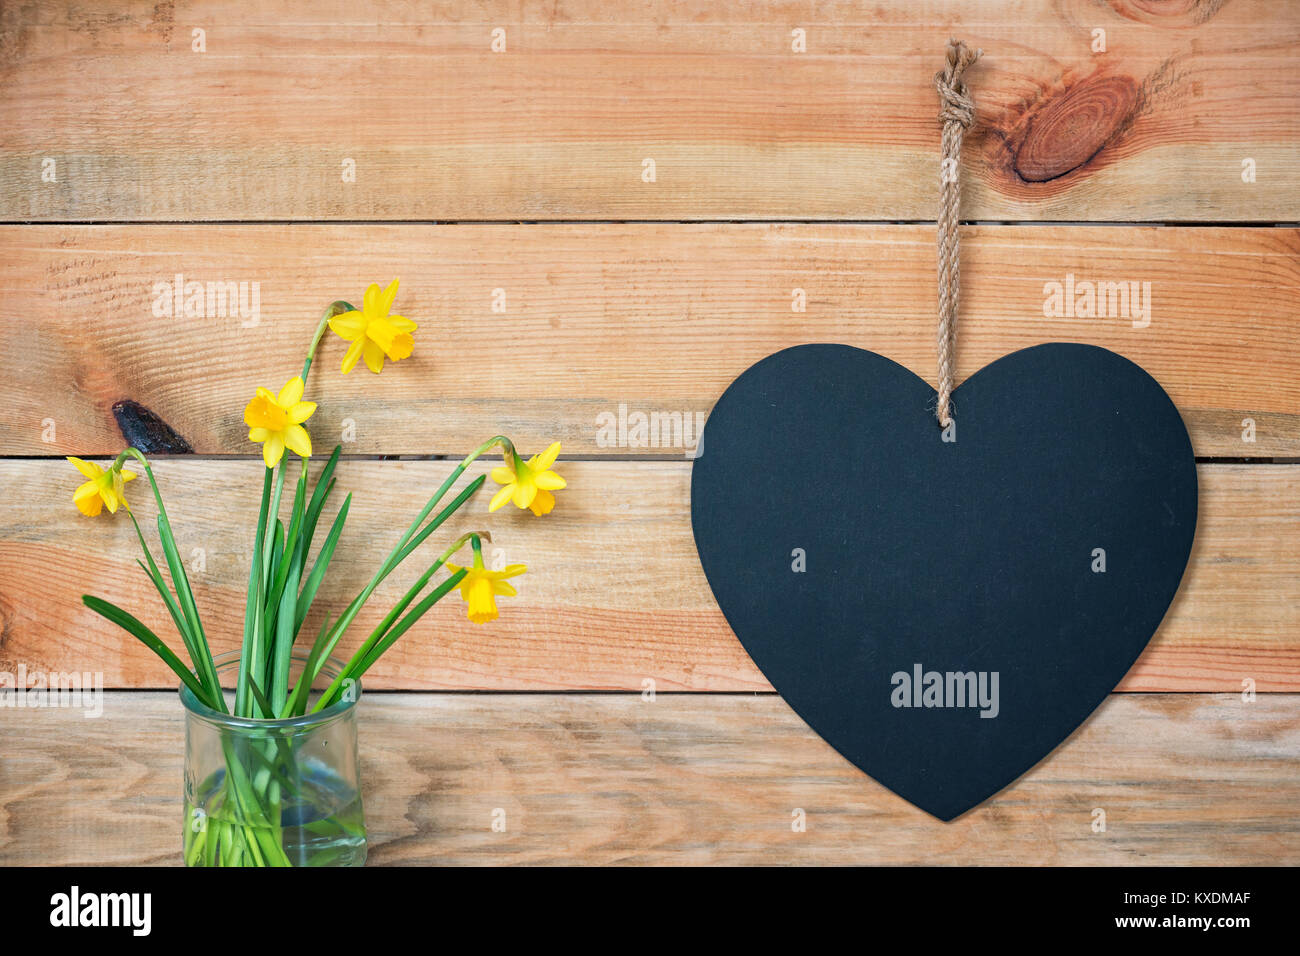 Wood planks with daffodils and a chalkboard in the shape of a  heart, love greeting card background with copy space - Stock Image